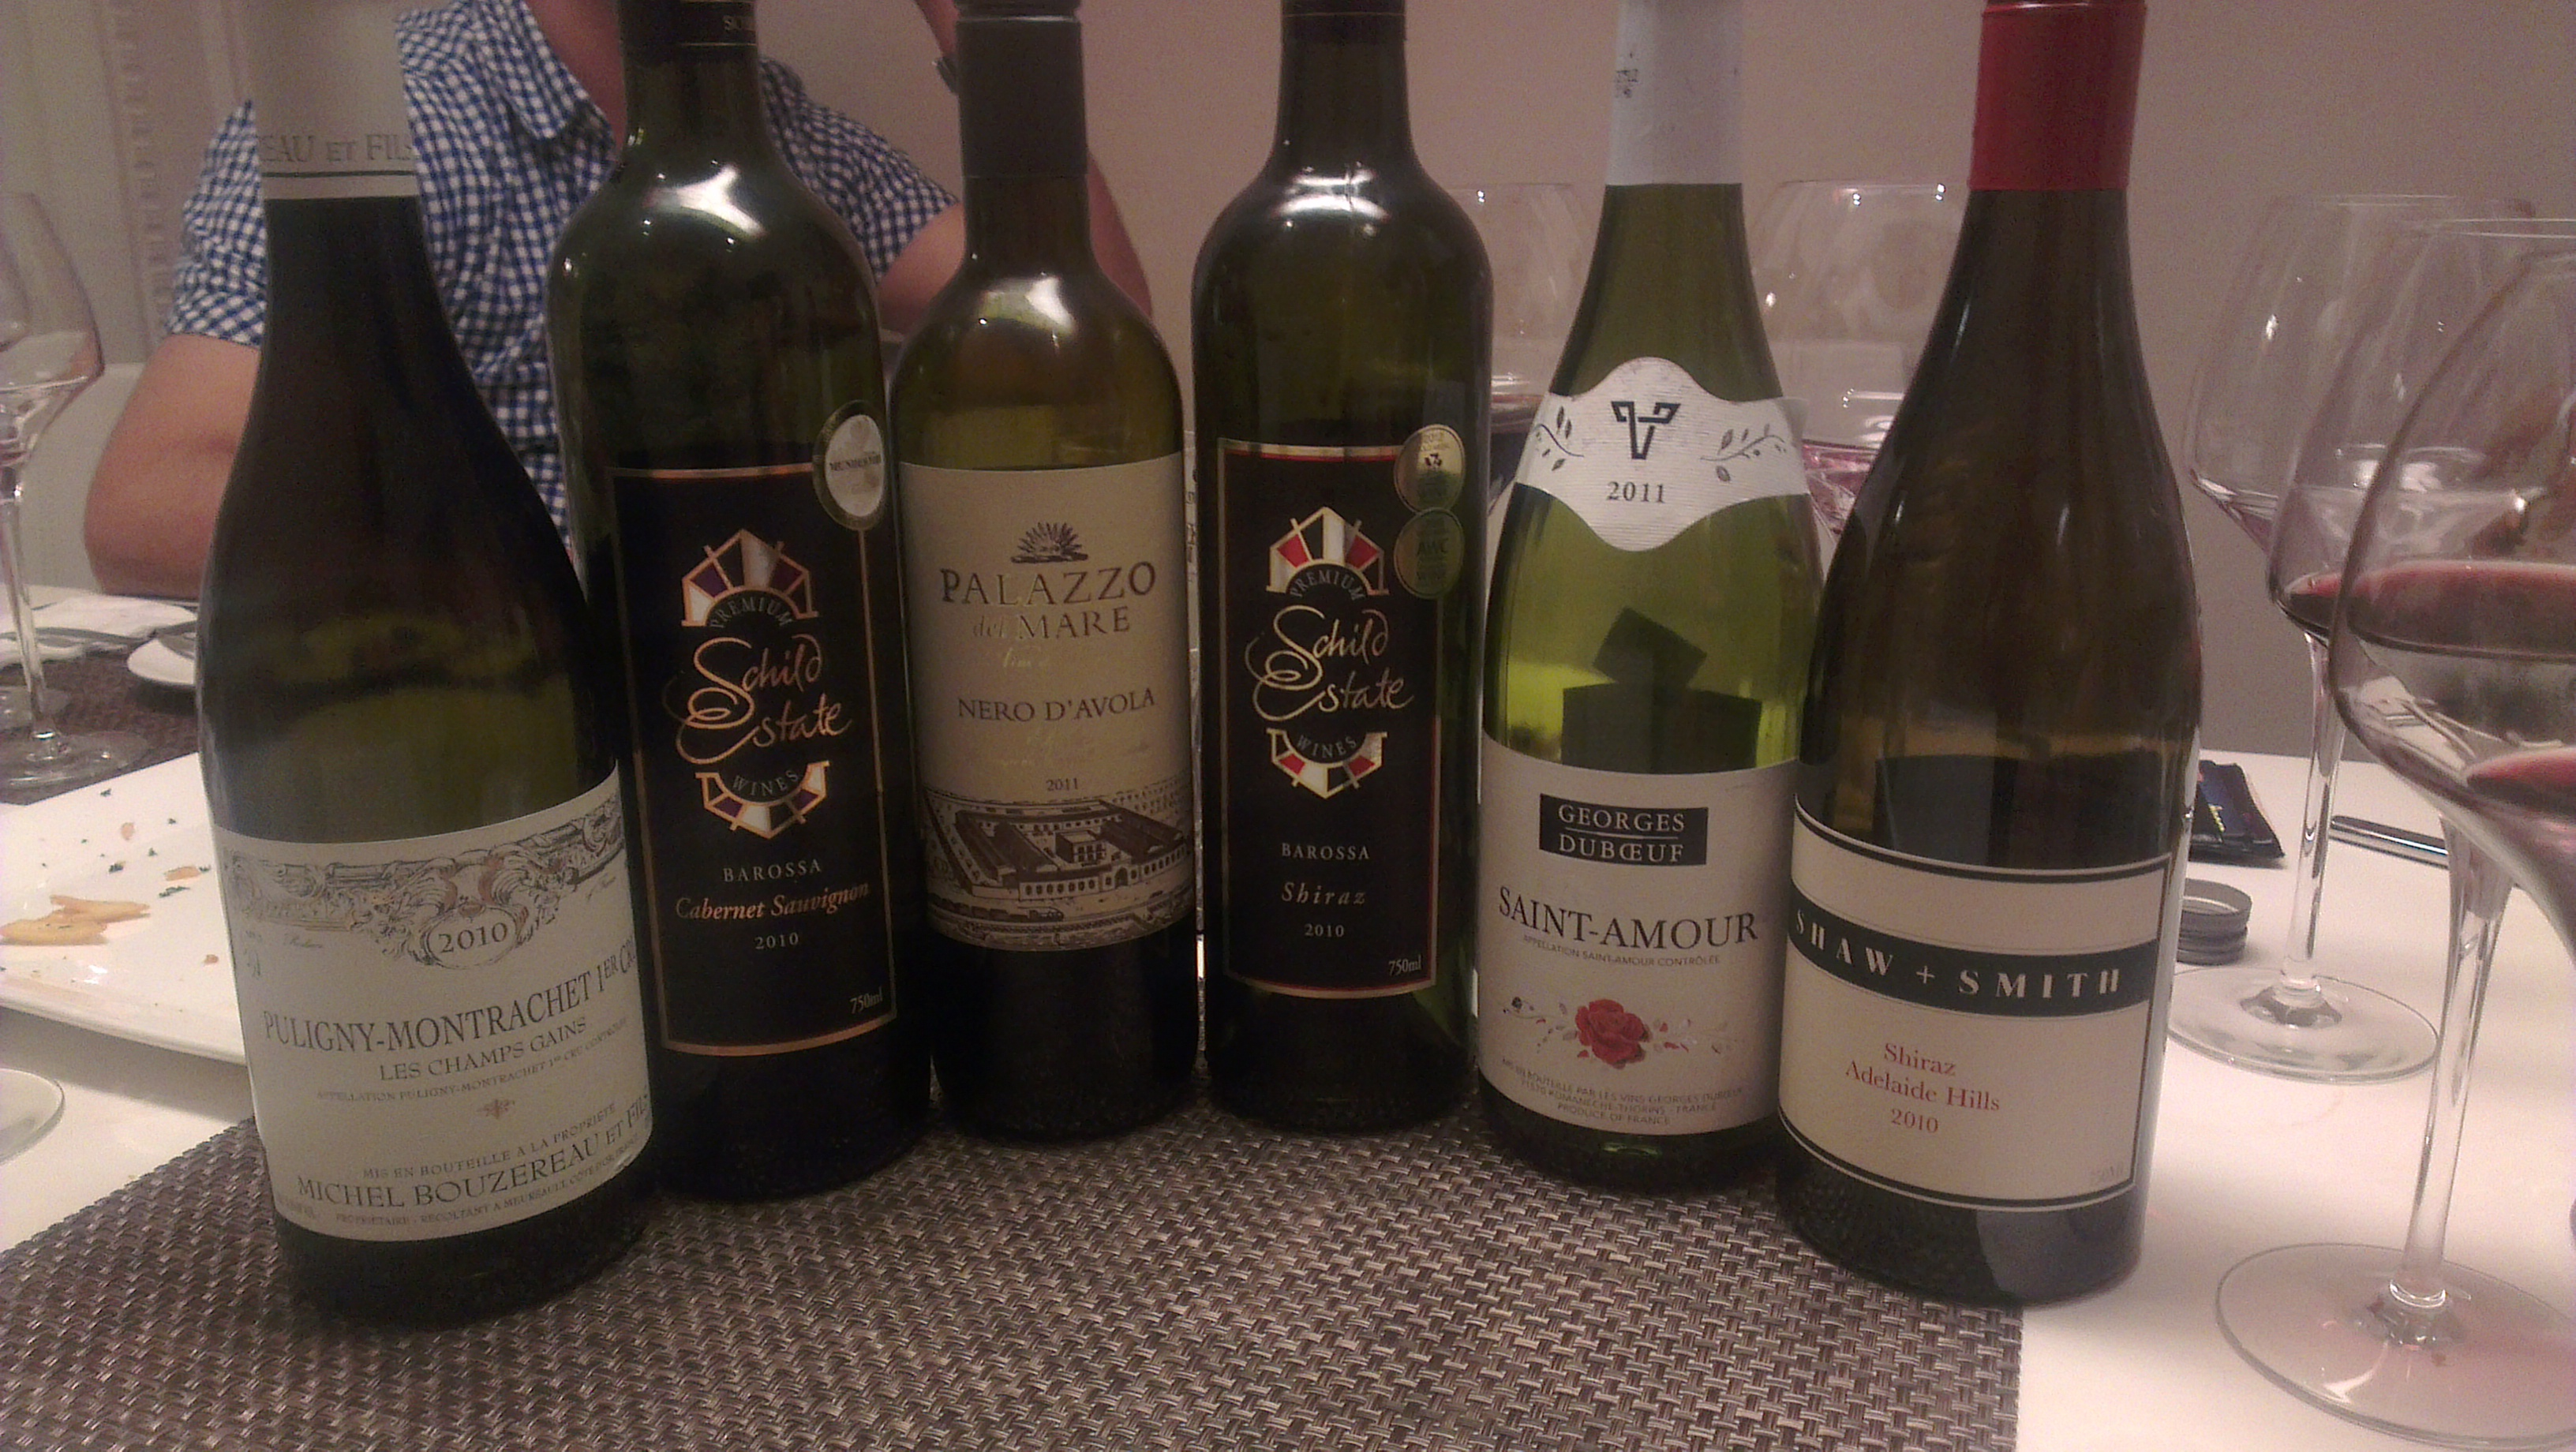 Wines tasted in a session with friends